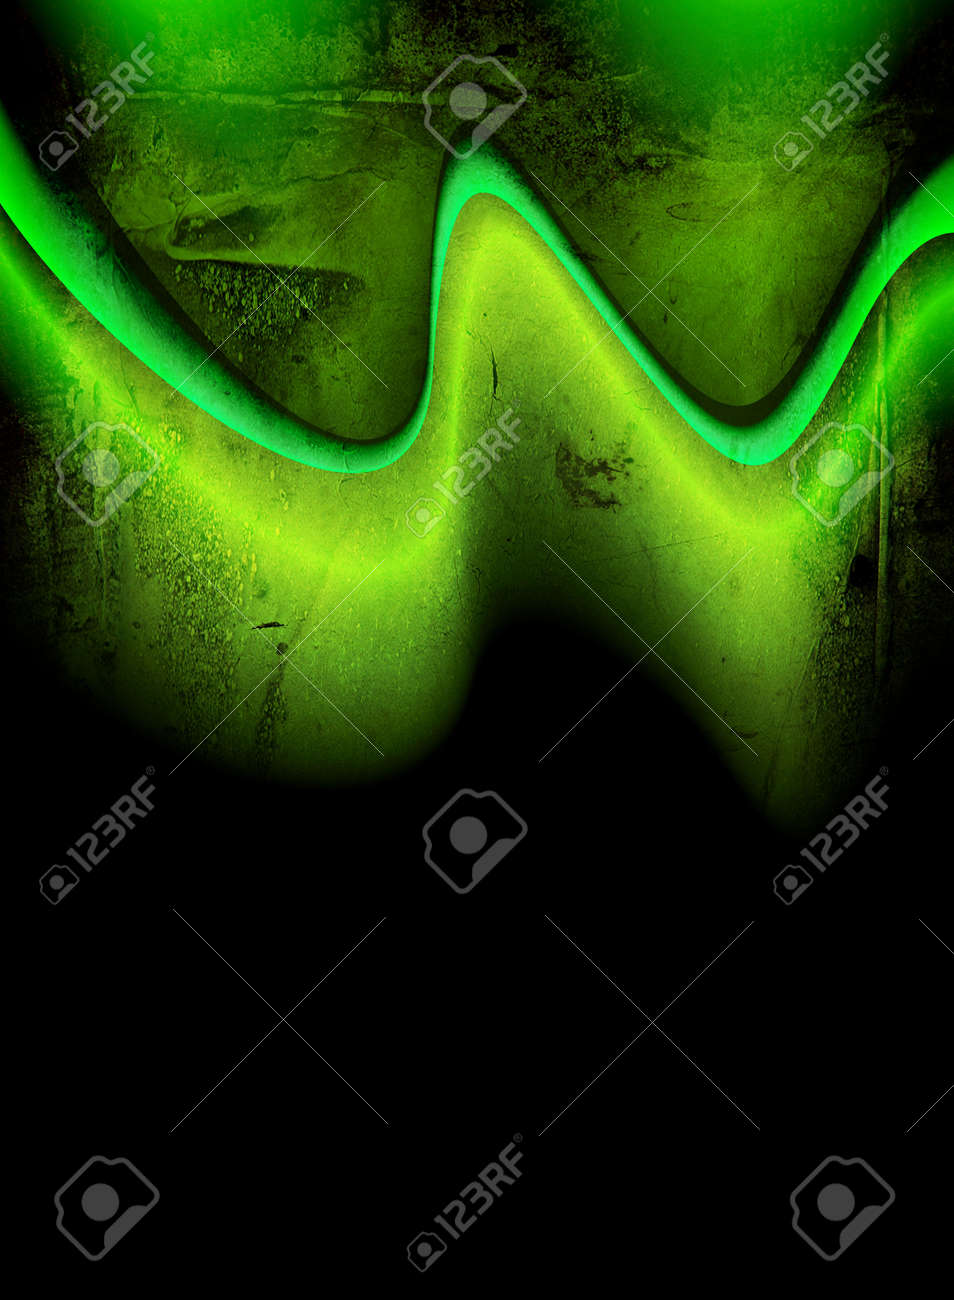 Spooky grunge background with room to add your own copy Stock Photo - 3830134